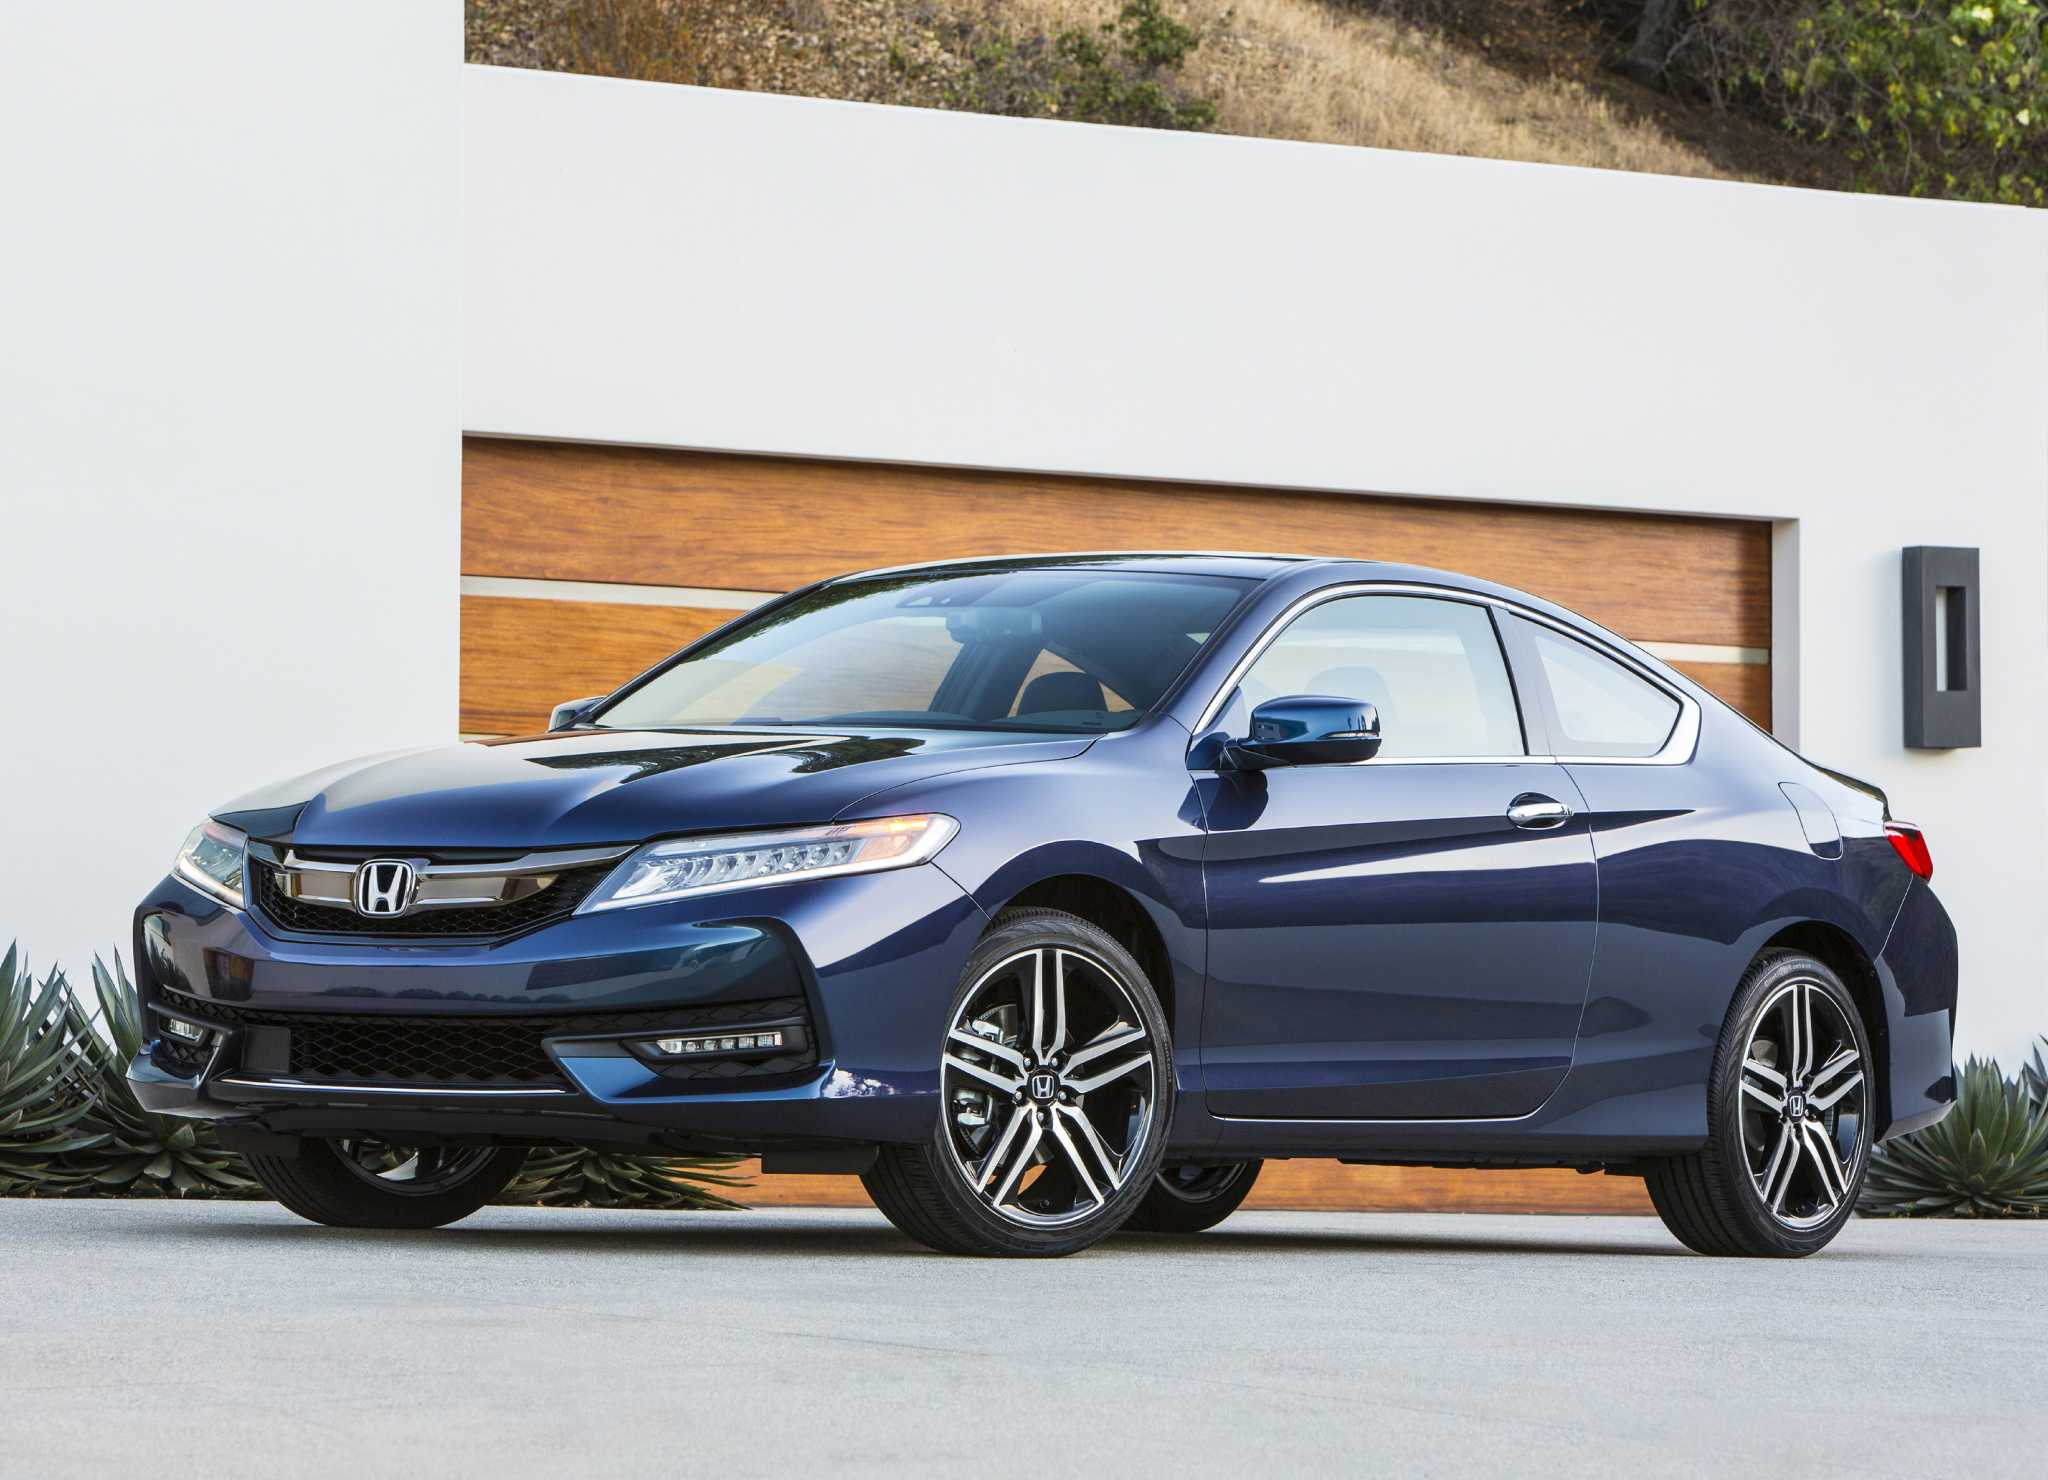 accord price coupe lx hatchback s honda features interior reviews photos used